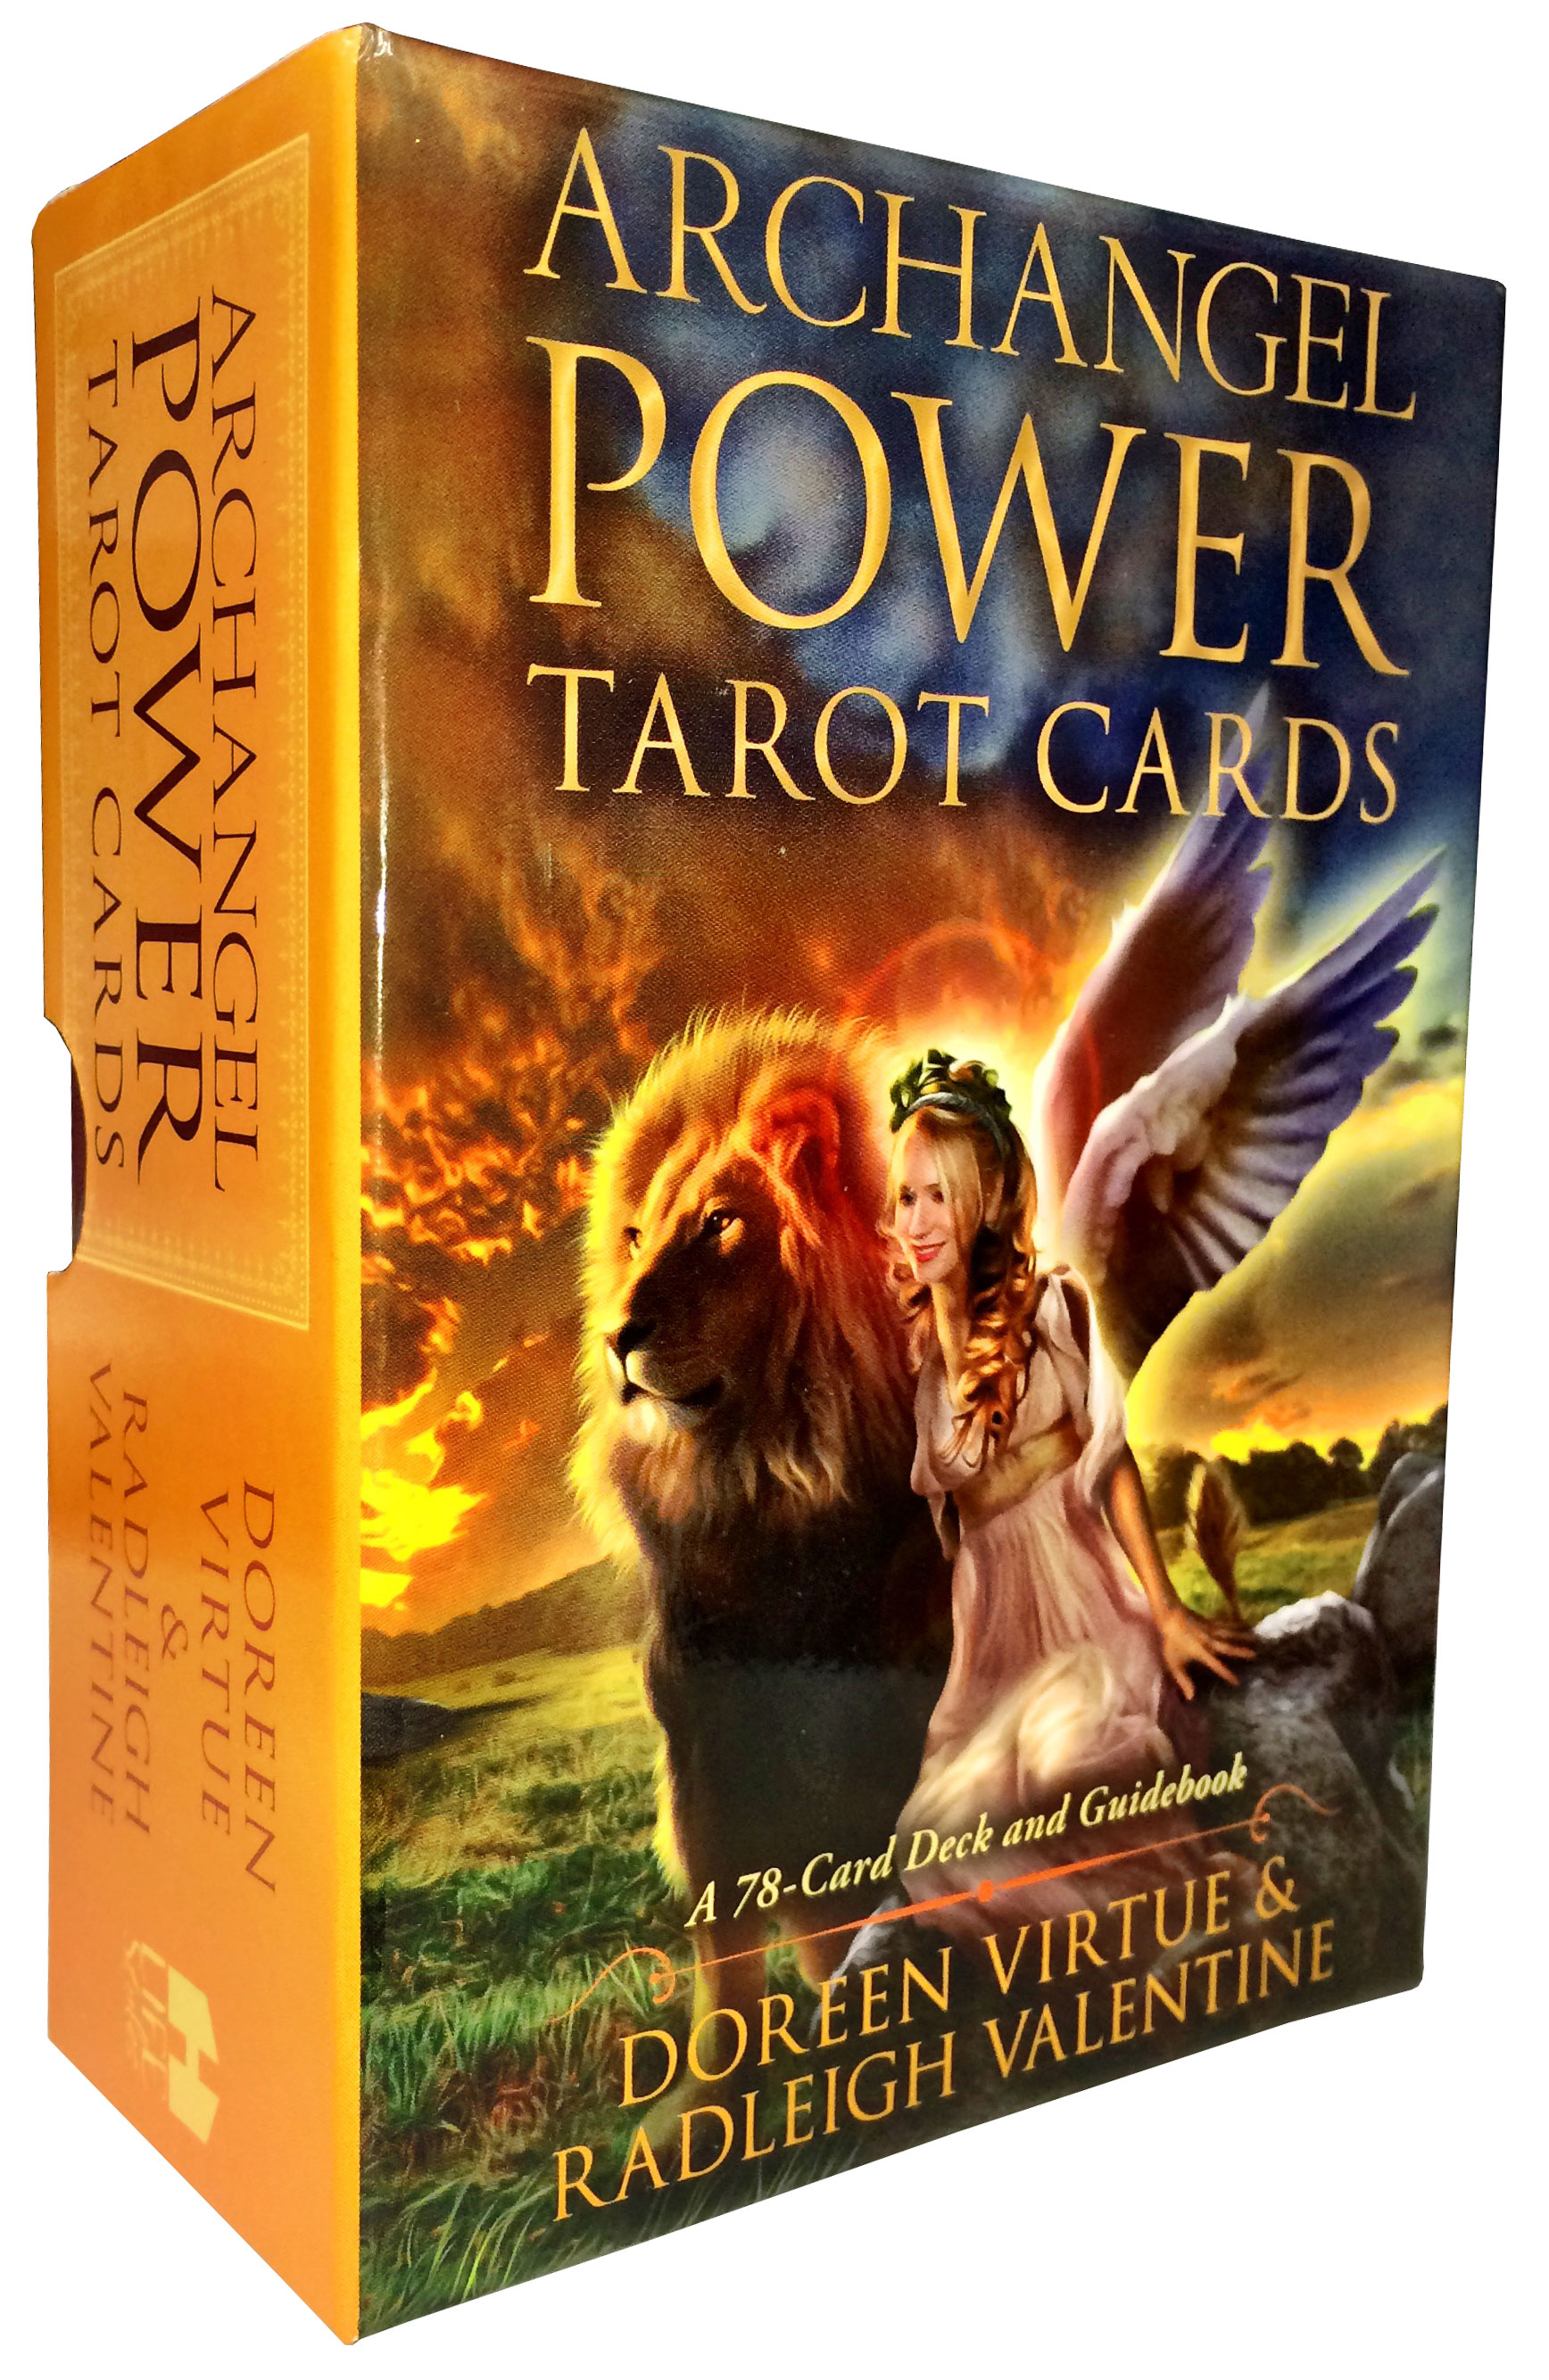 Archangel Power Tarot Cards Deck Doreen Virtue Radleigh